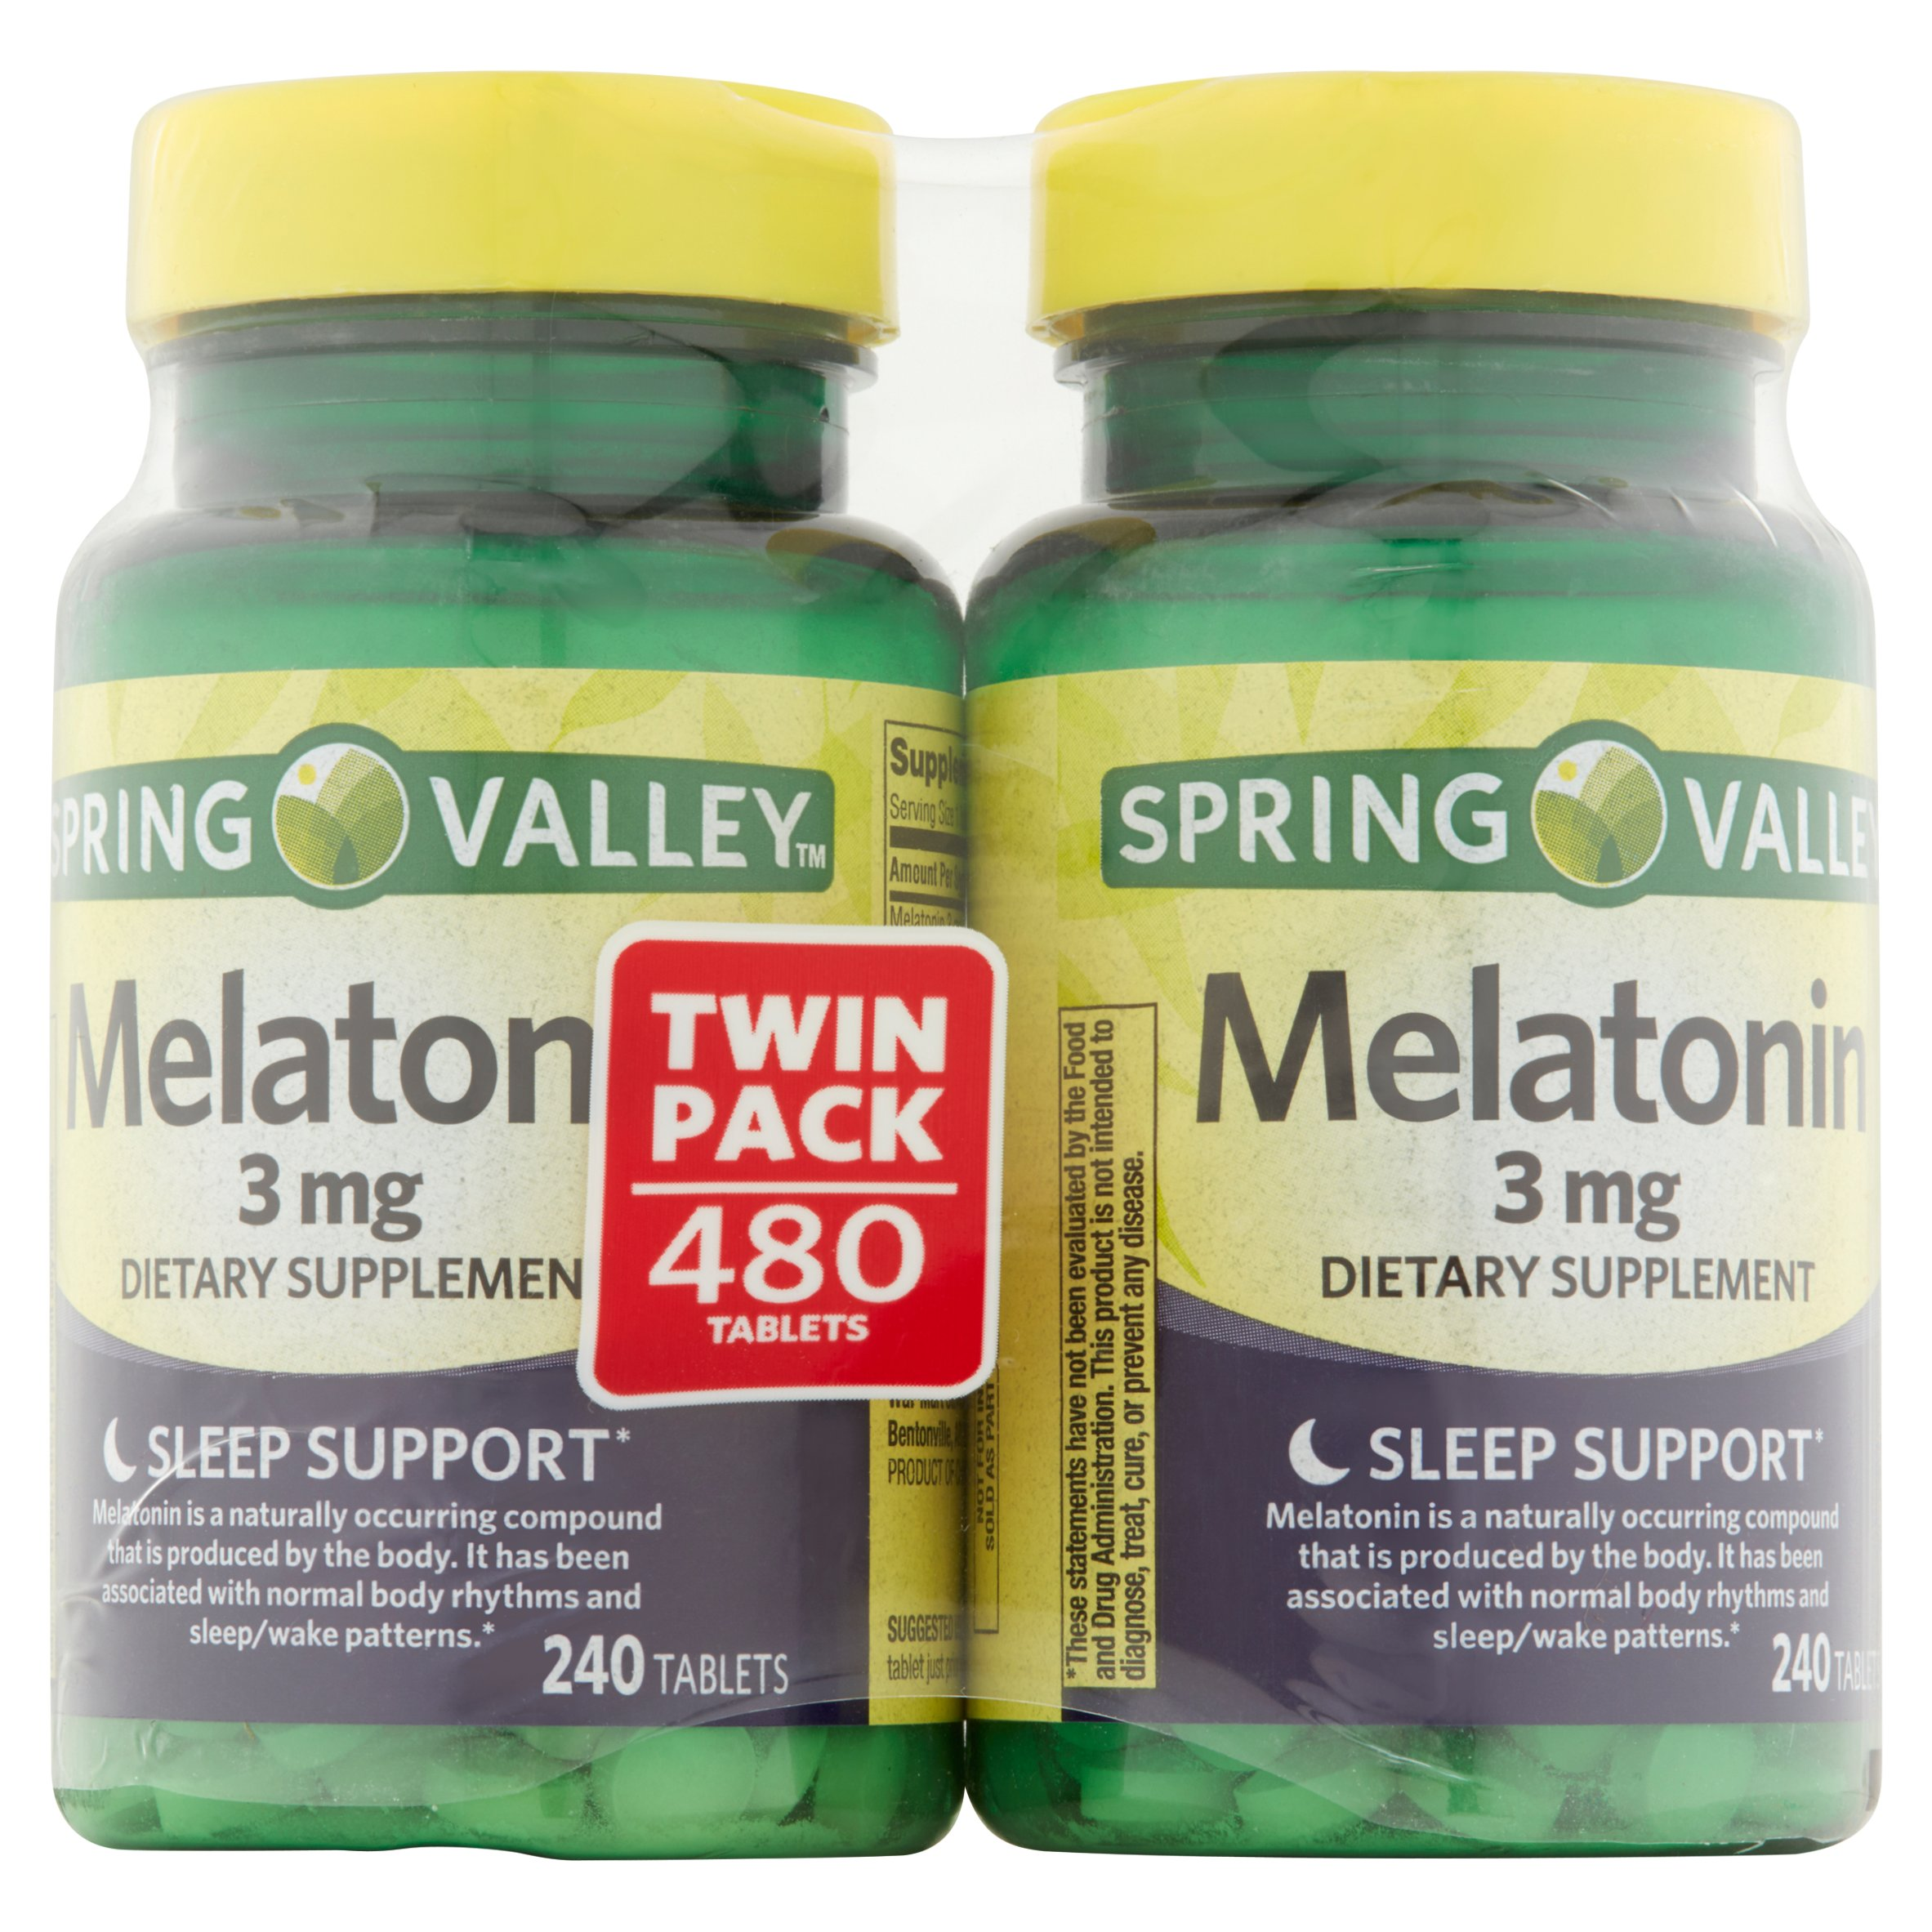 Spring Valley Melatonin Tablets, 3 mg, 240 Ct, 2 Pk